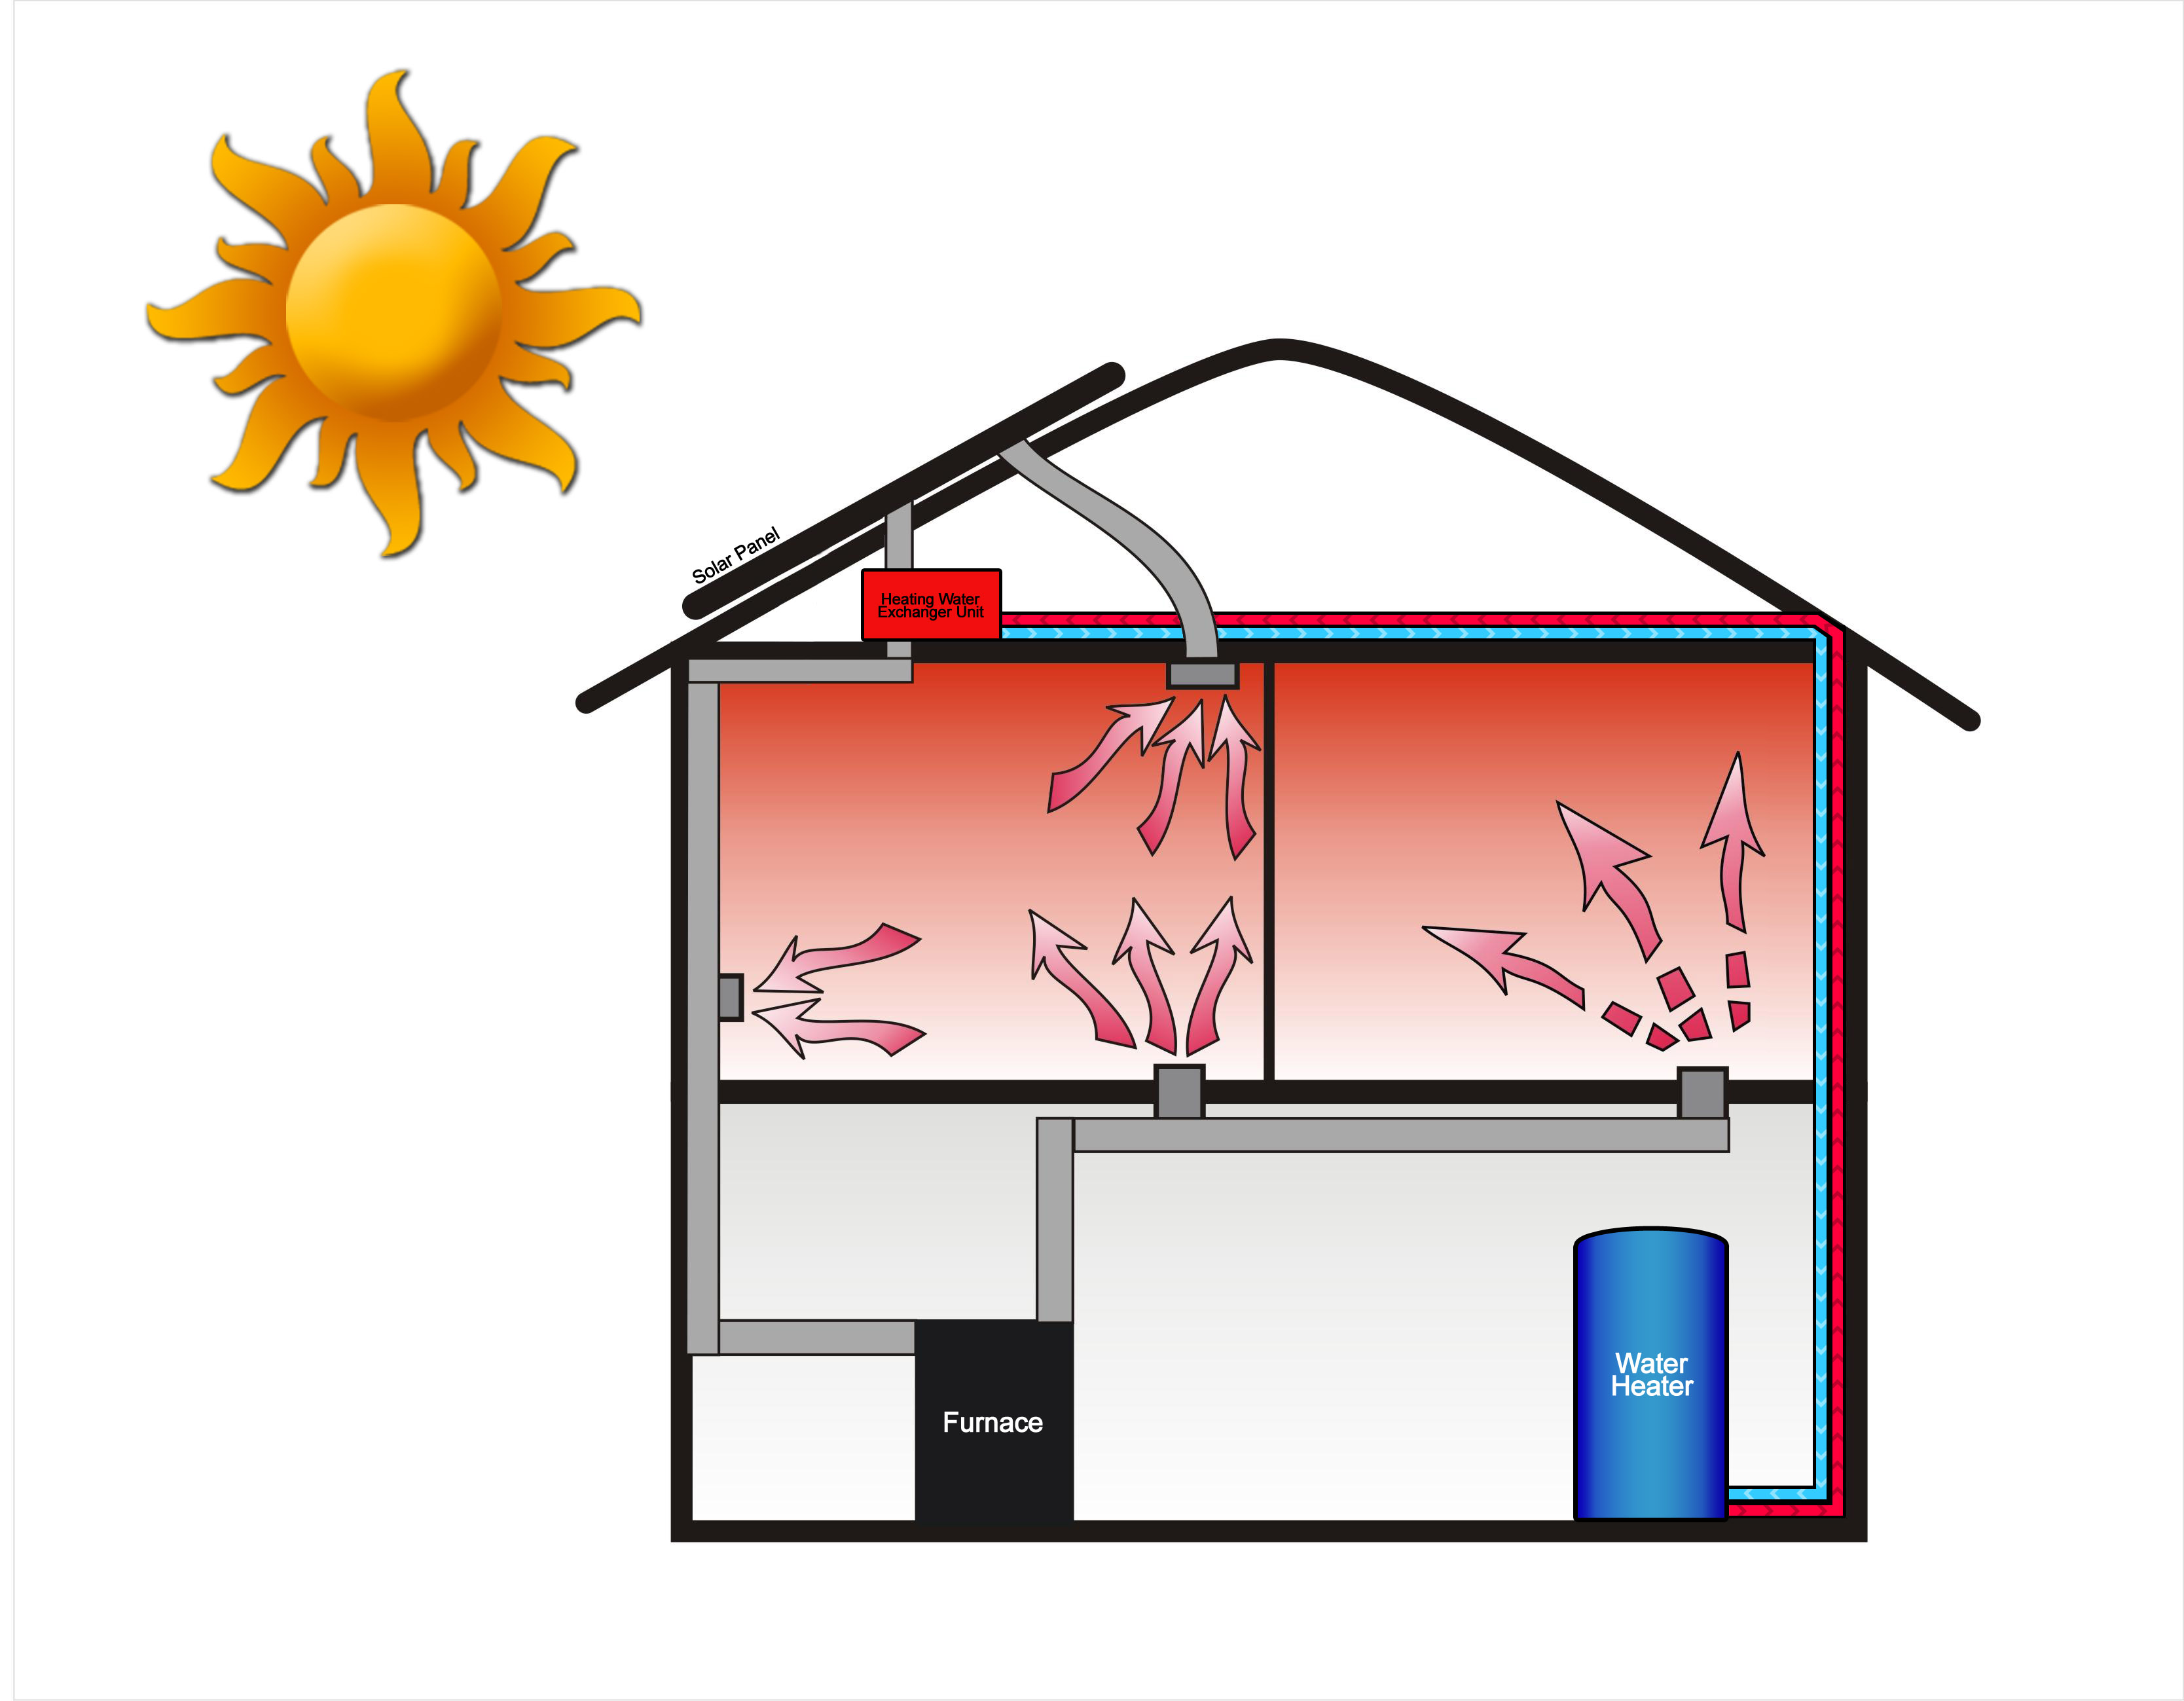 solar air heat water heater system with furnace attachment